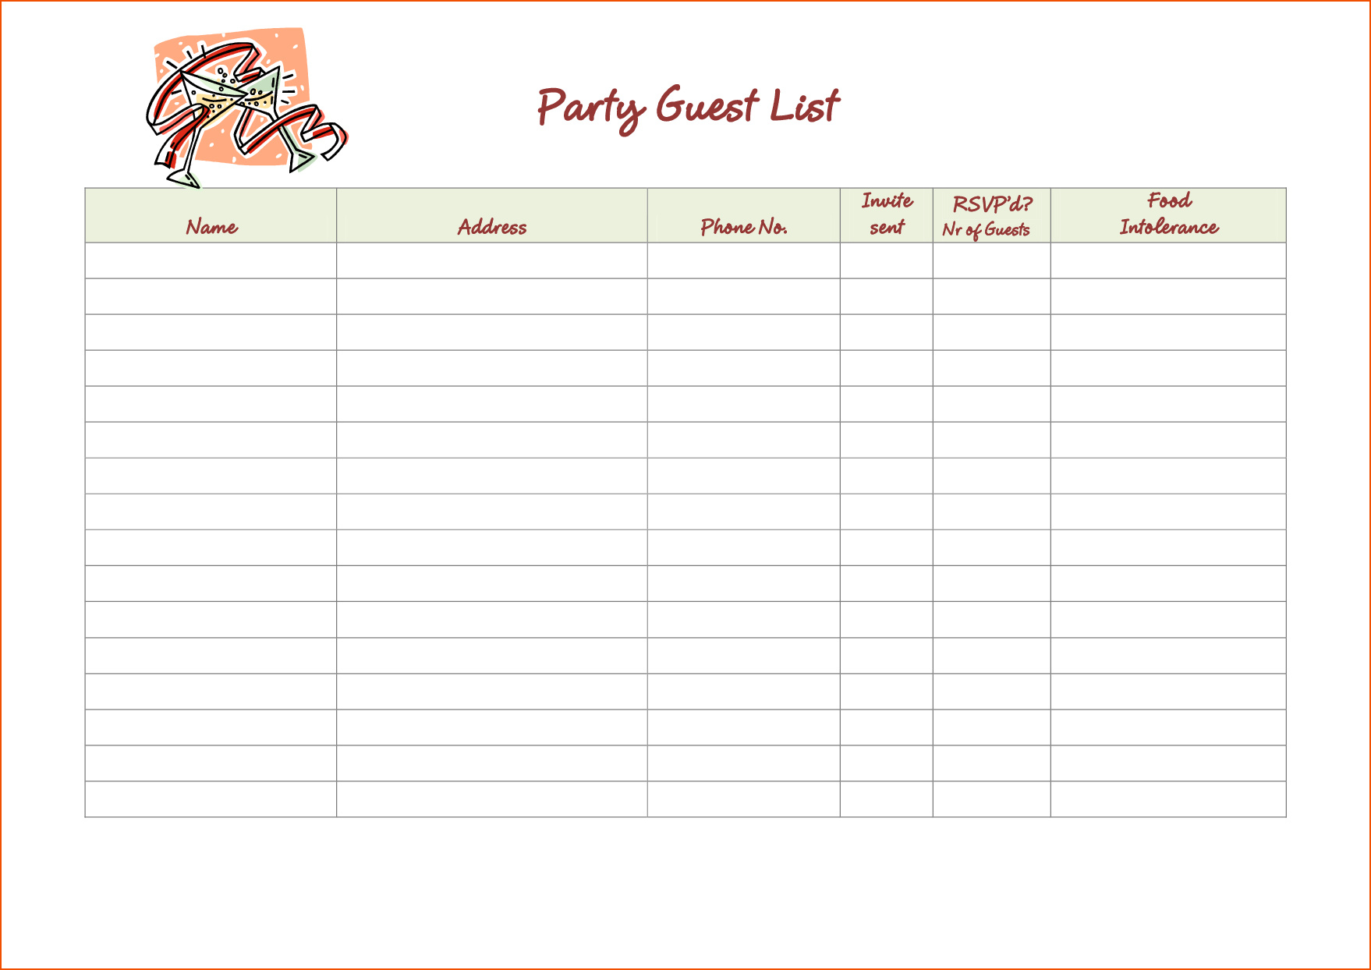 Excel Spreadsheet For Wedding Guest List Throughout Guest List Template Excel Beautiful Wedding Bud Excel Spreadsheet